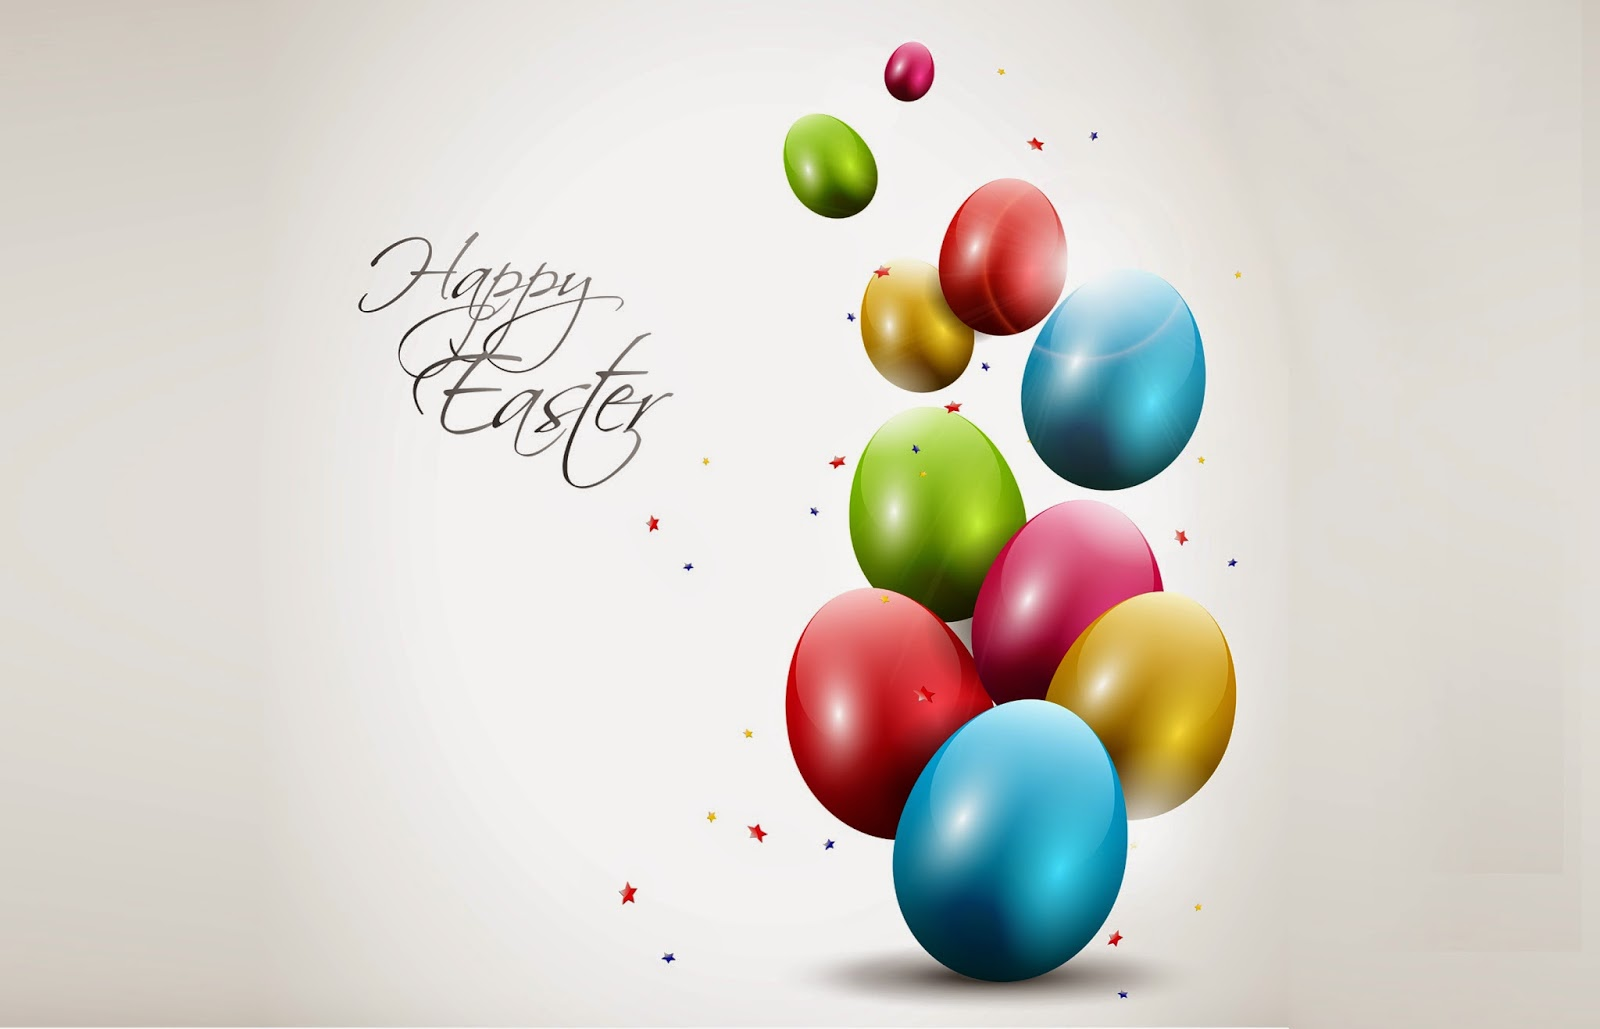 Good friday 2015 easter 2015 cards and ecards for facebook wishes greetings kristyandbryce Choice Image